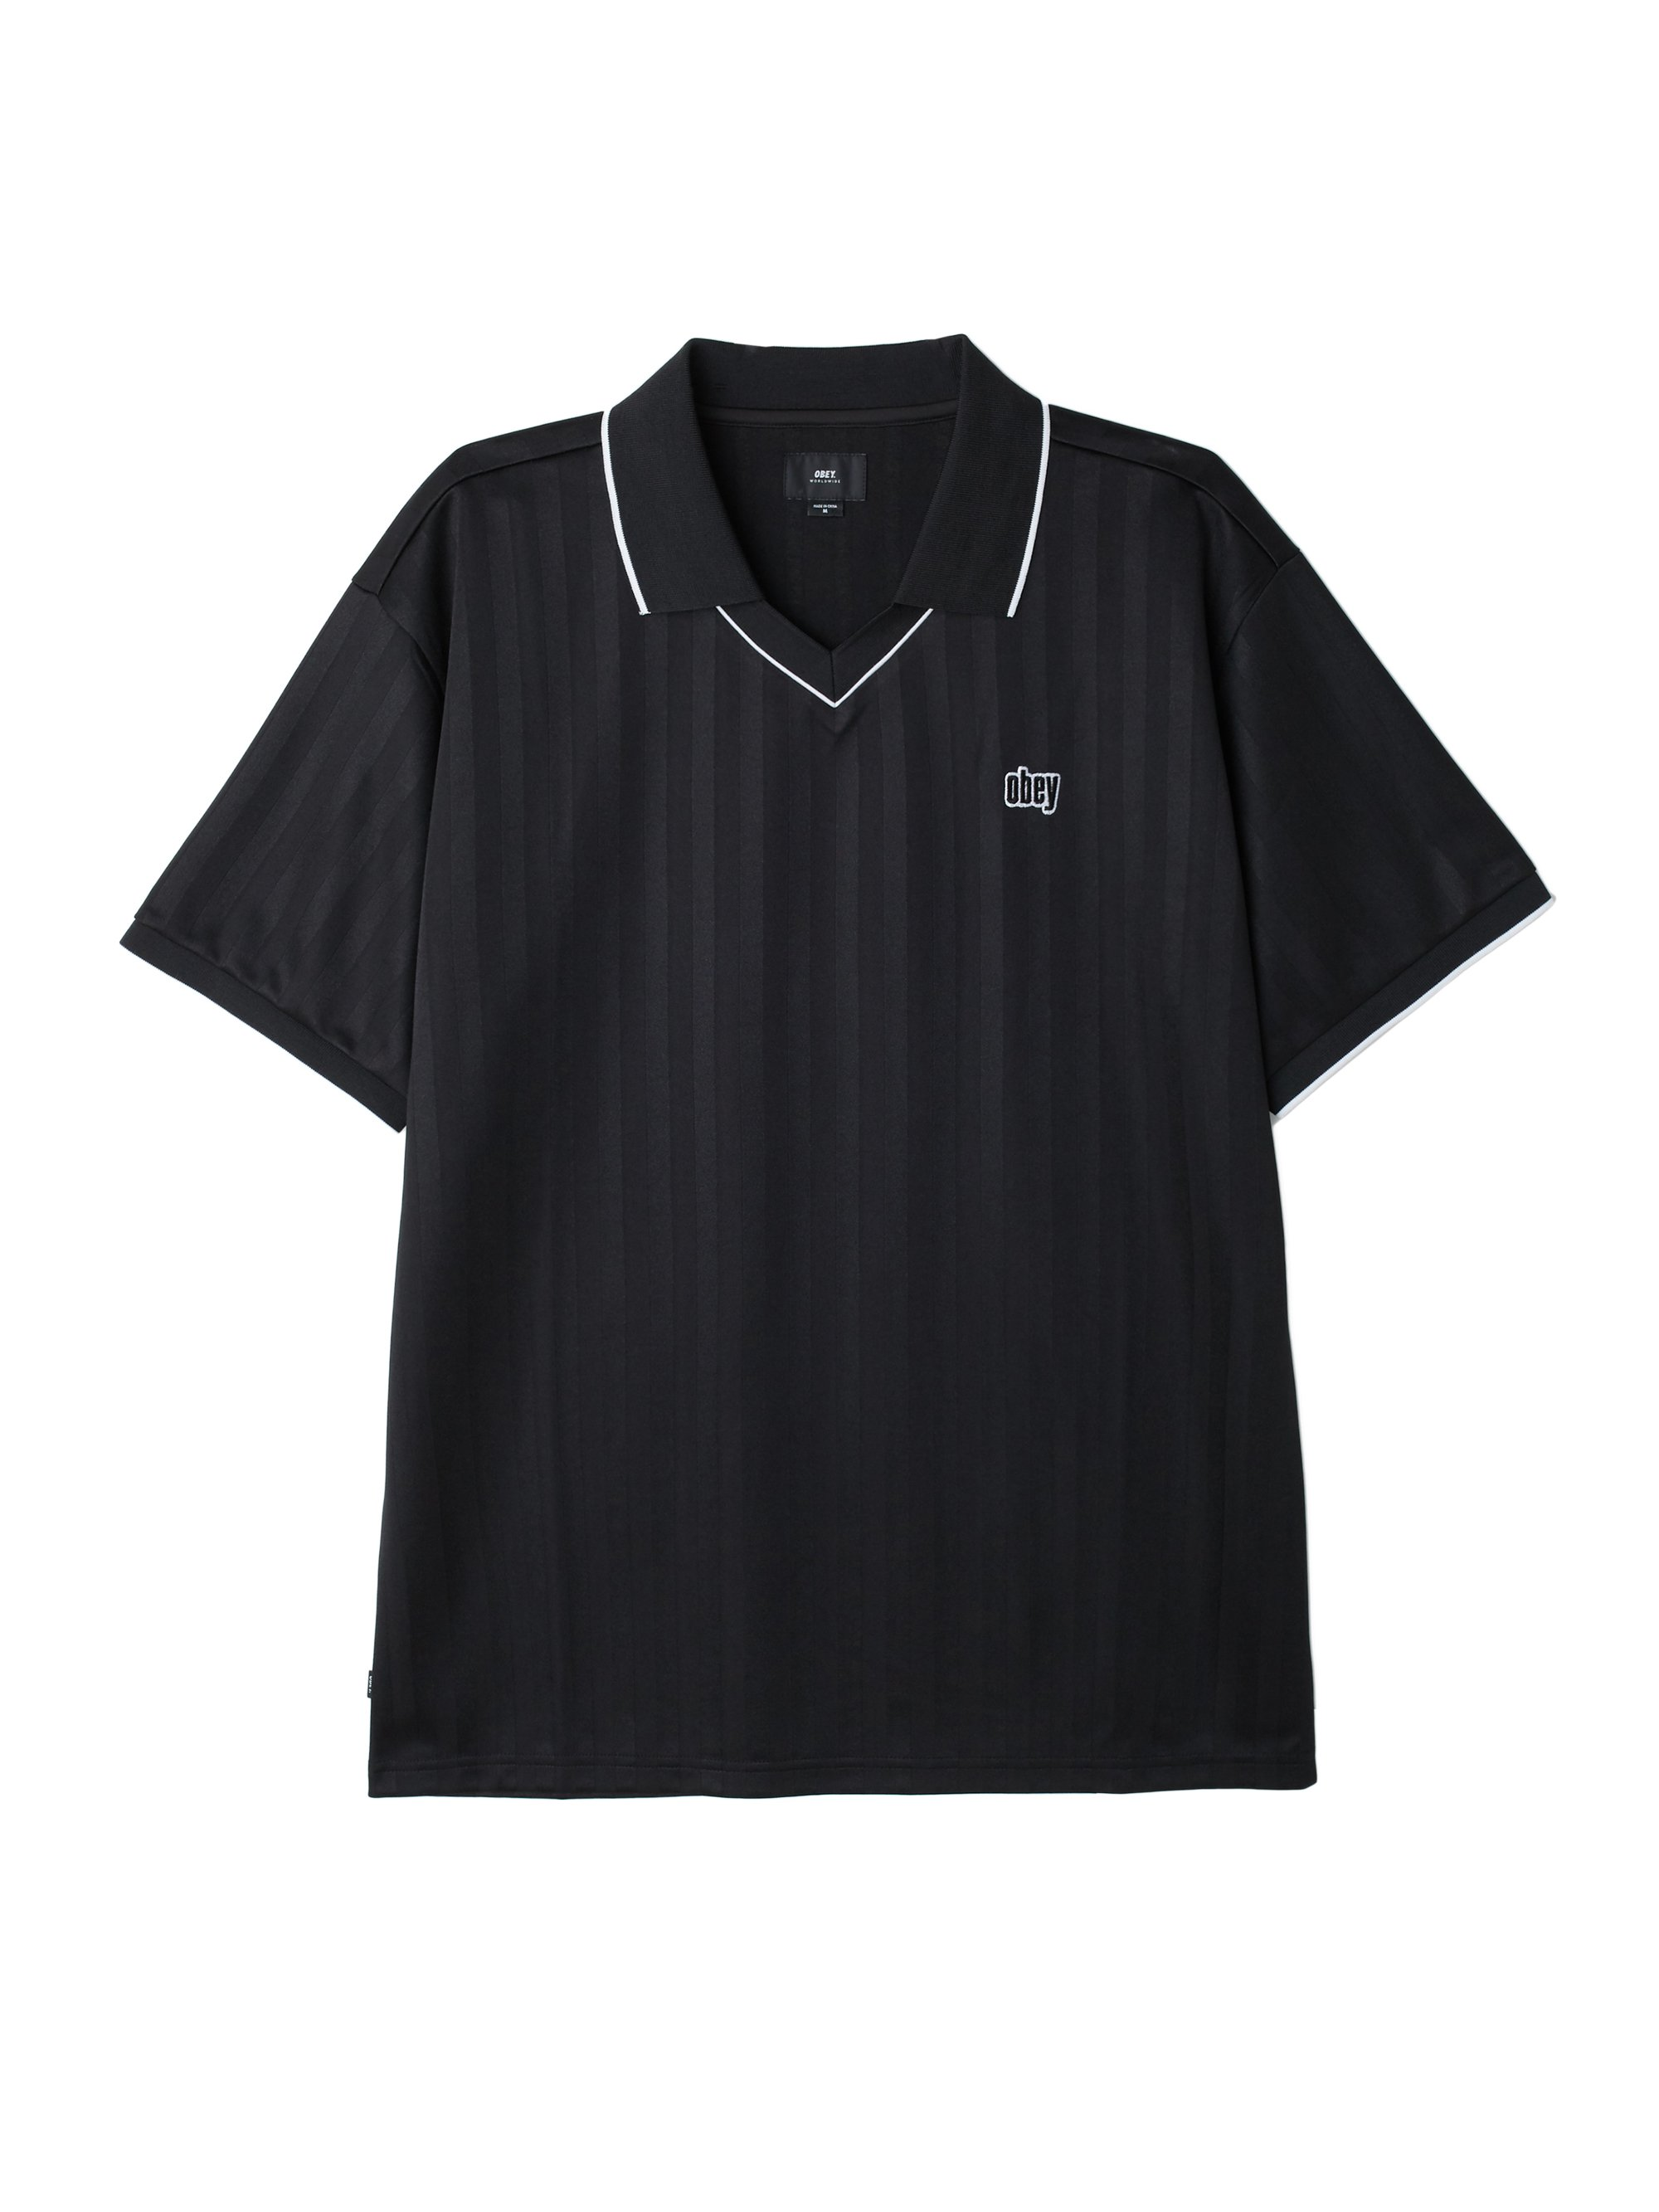 f2f4f251 Harry Soccer Polo Shirt - Obey Clothing UK